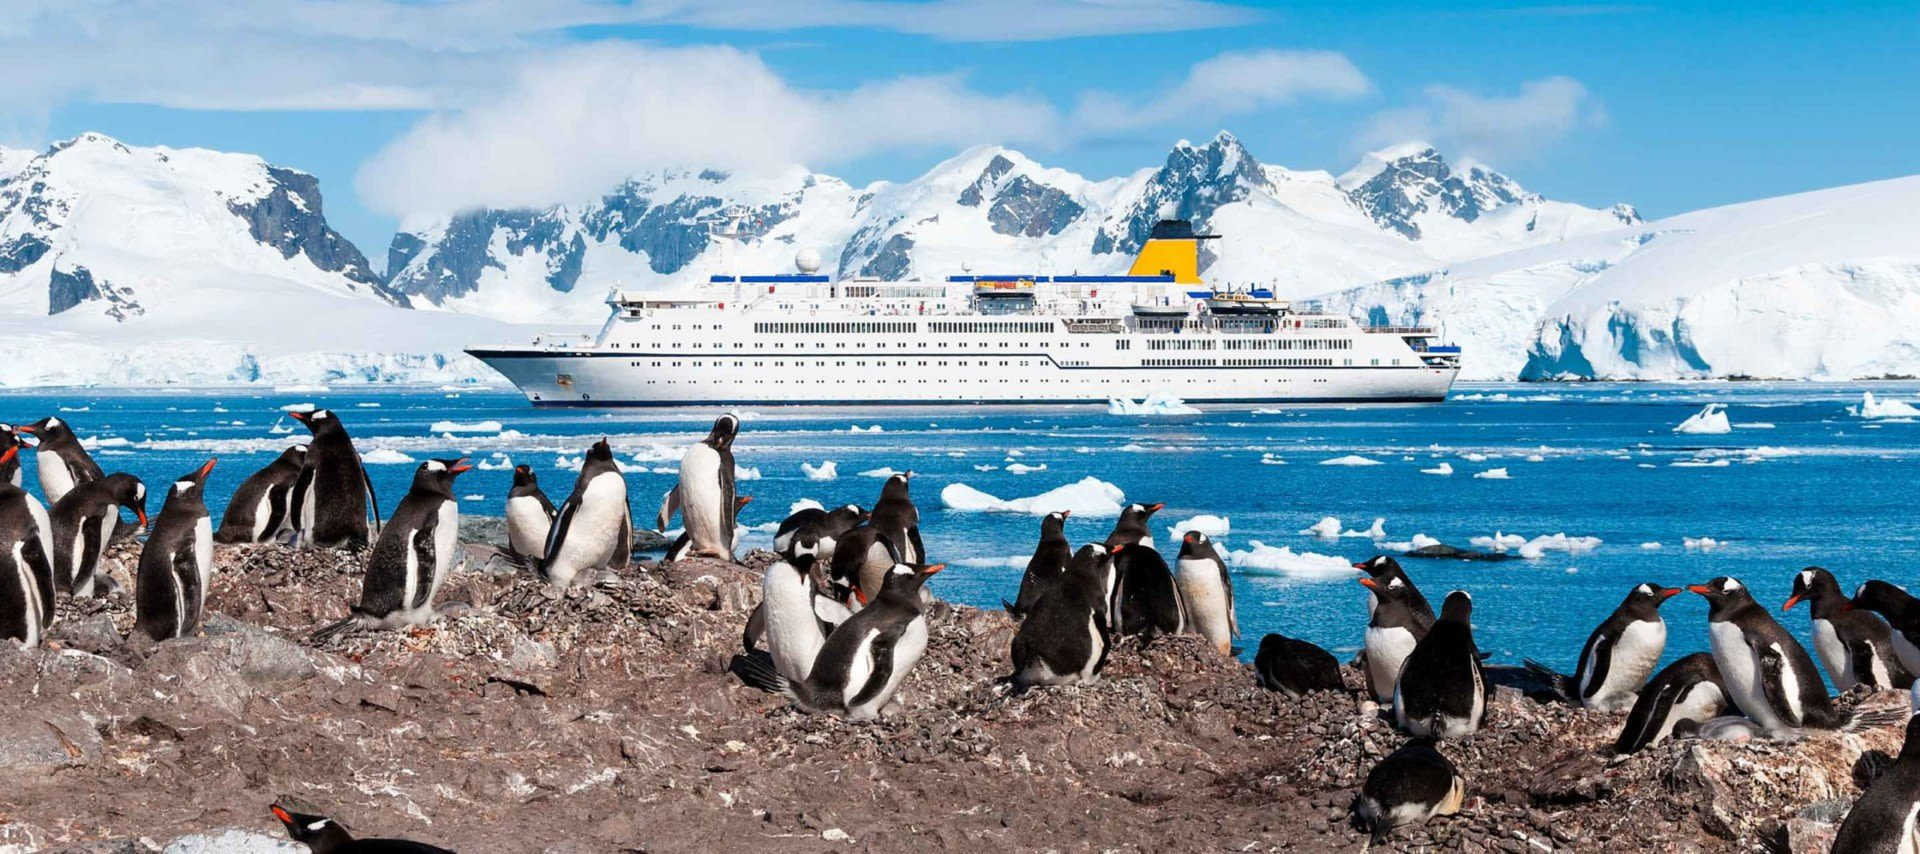 Penguins stand on shore waiting to get back on their ship for their Antarctica Cruise. near Antarctica cruise boat